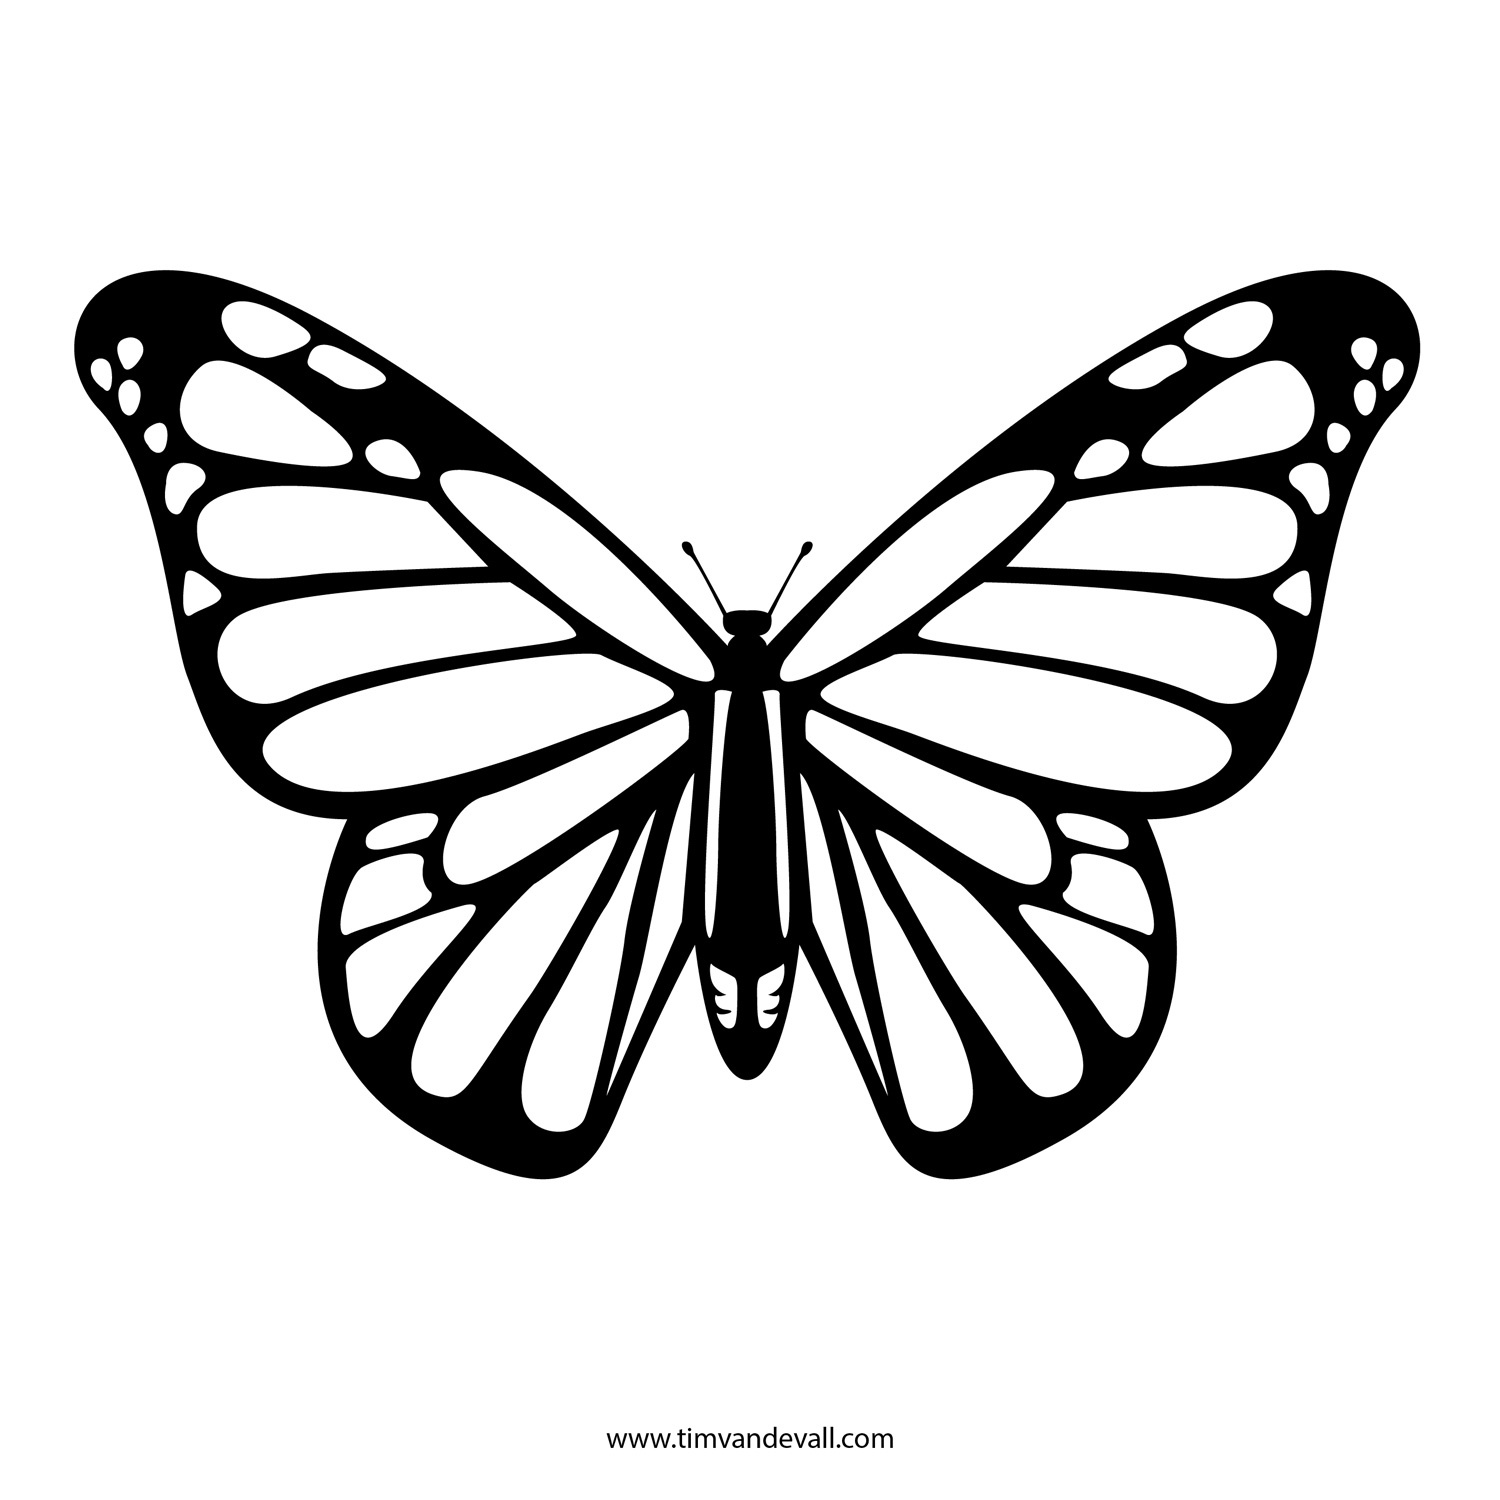 Free Butterfly Stencil | Monarch Butterfly Outline And Silhouette - Free Printable Butterfly